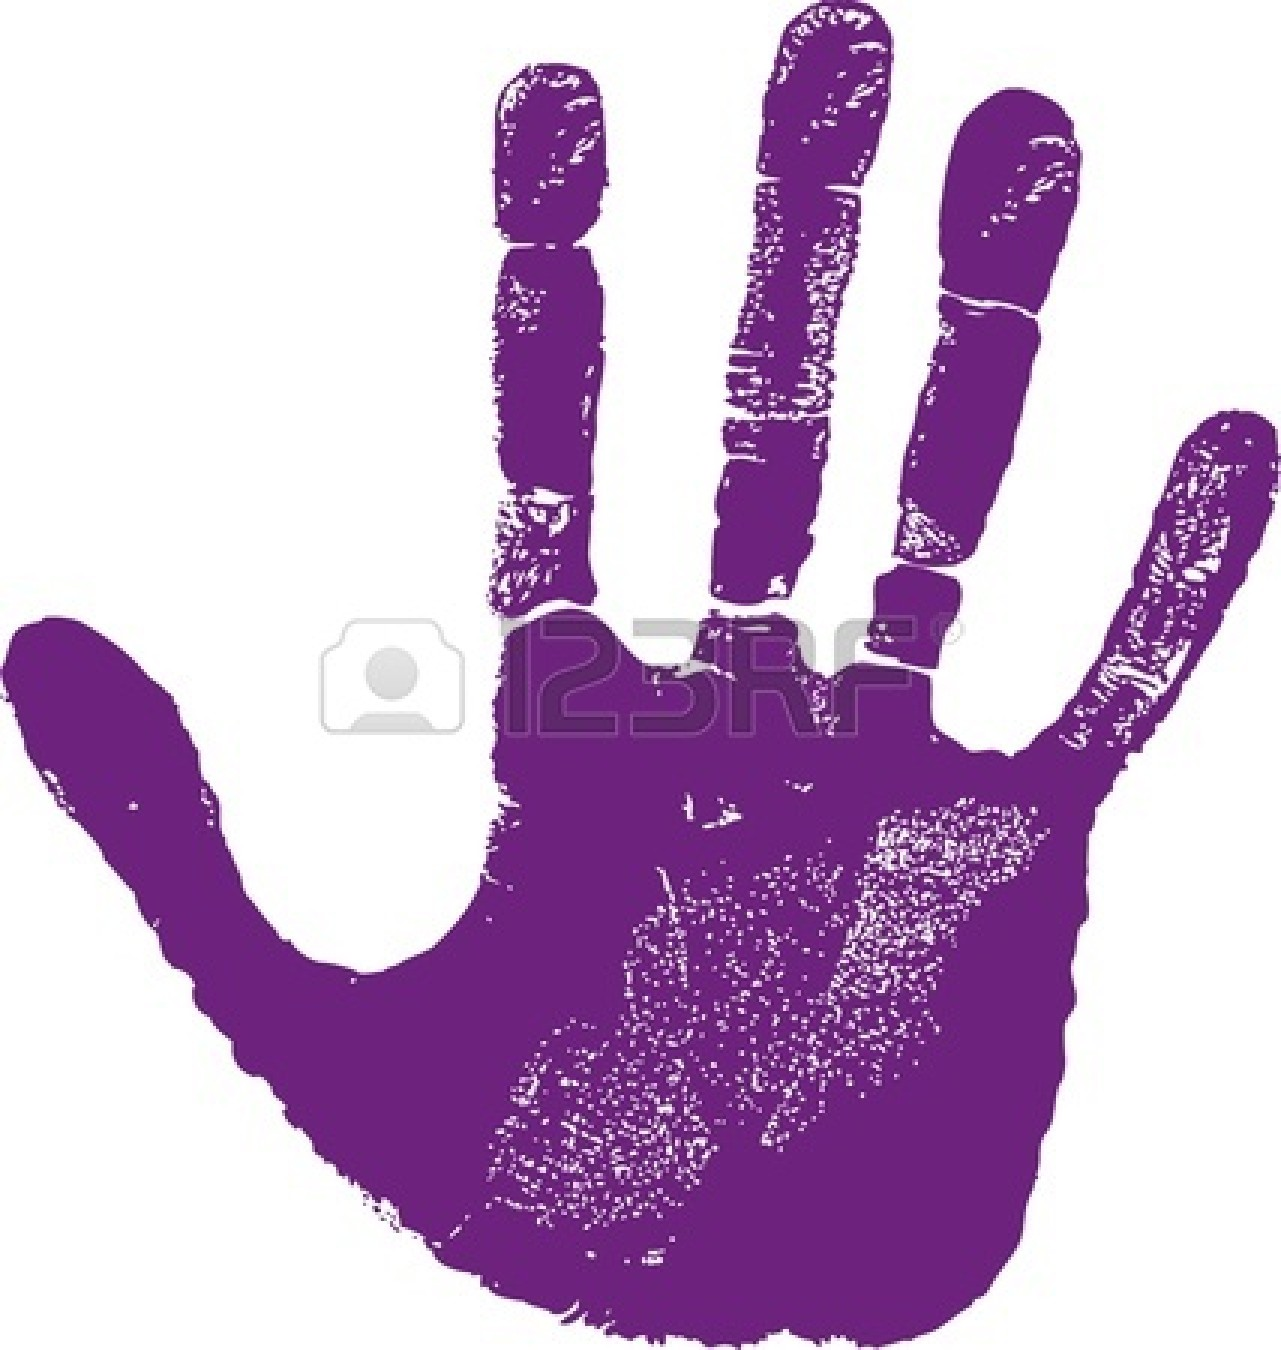 Right clipart handprint Free Right Clipart Clipart handprint%20clipart